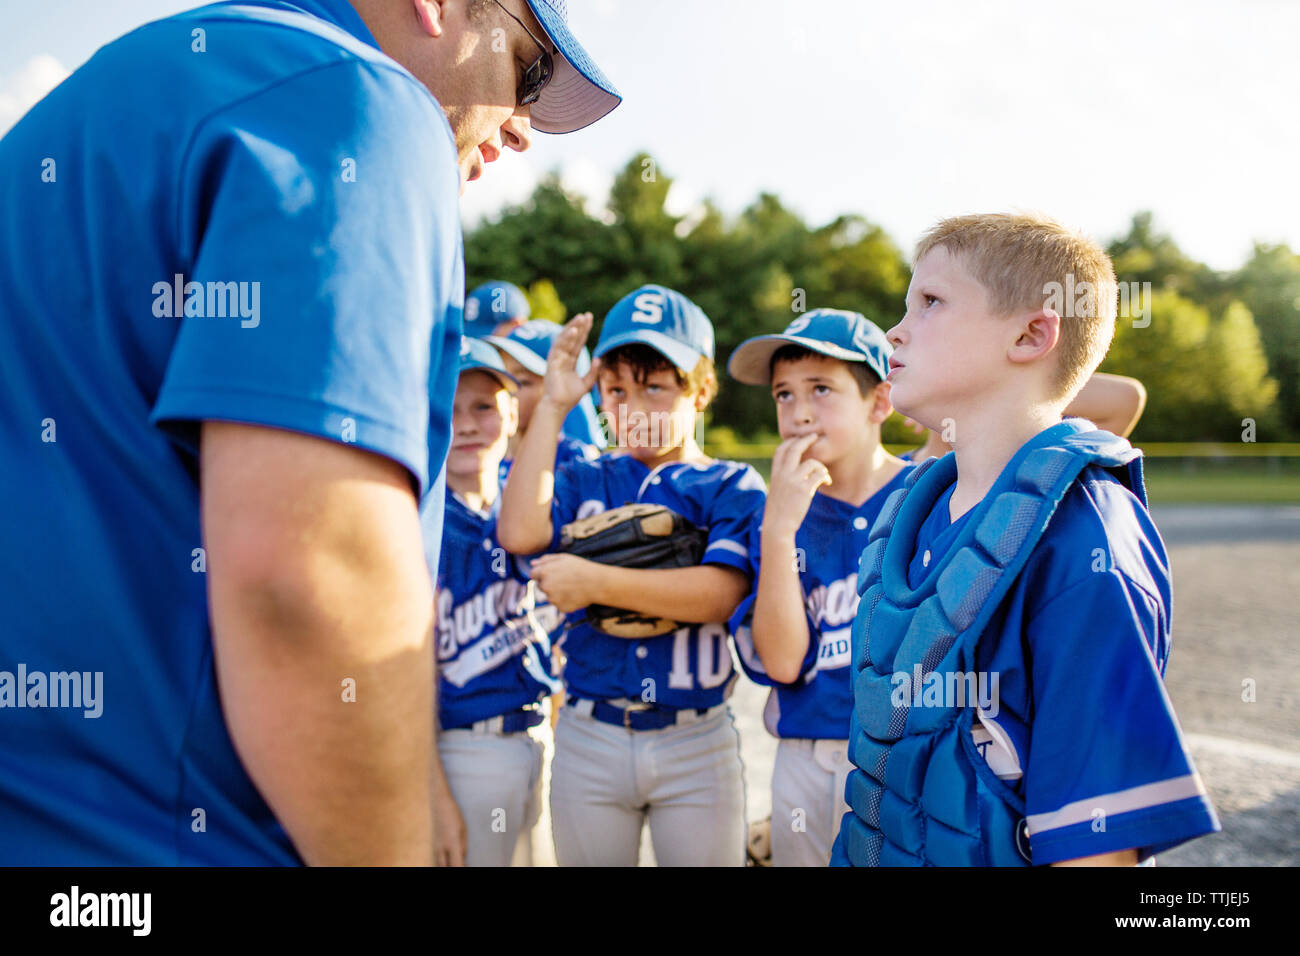 Coach guiding players on field - Stock Image